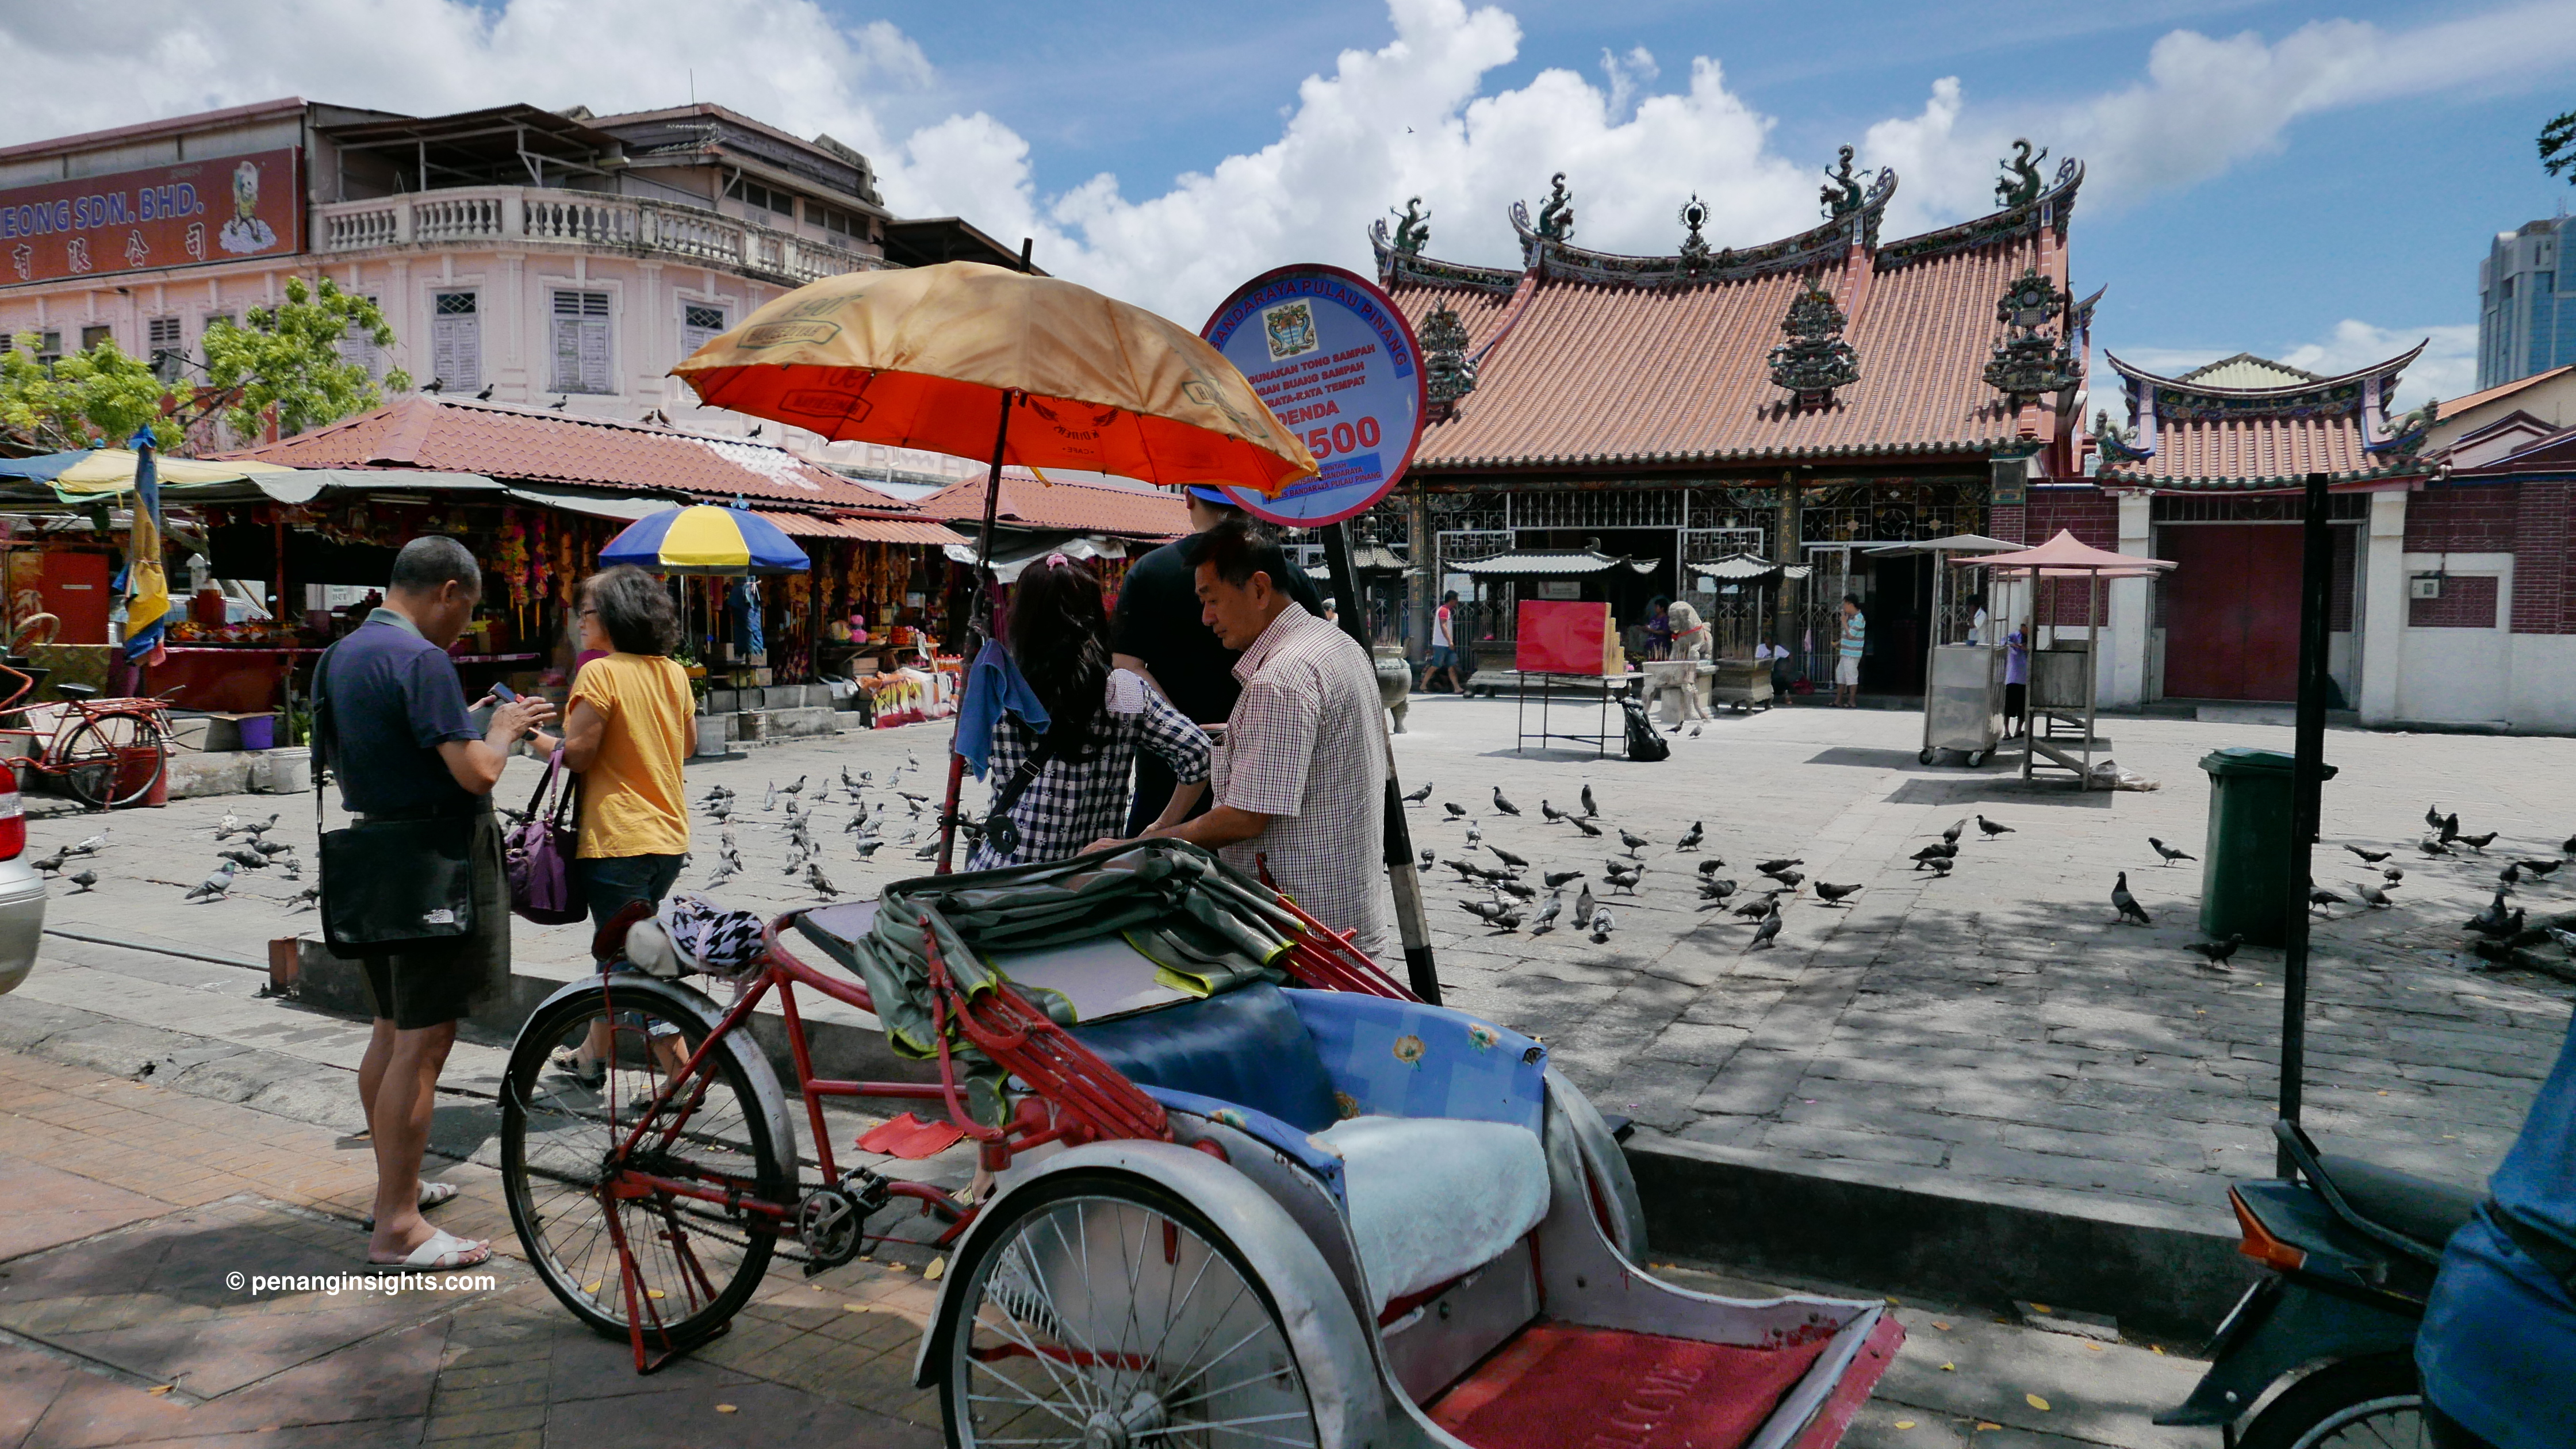 Penang attractions on Penang heritage